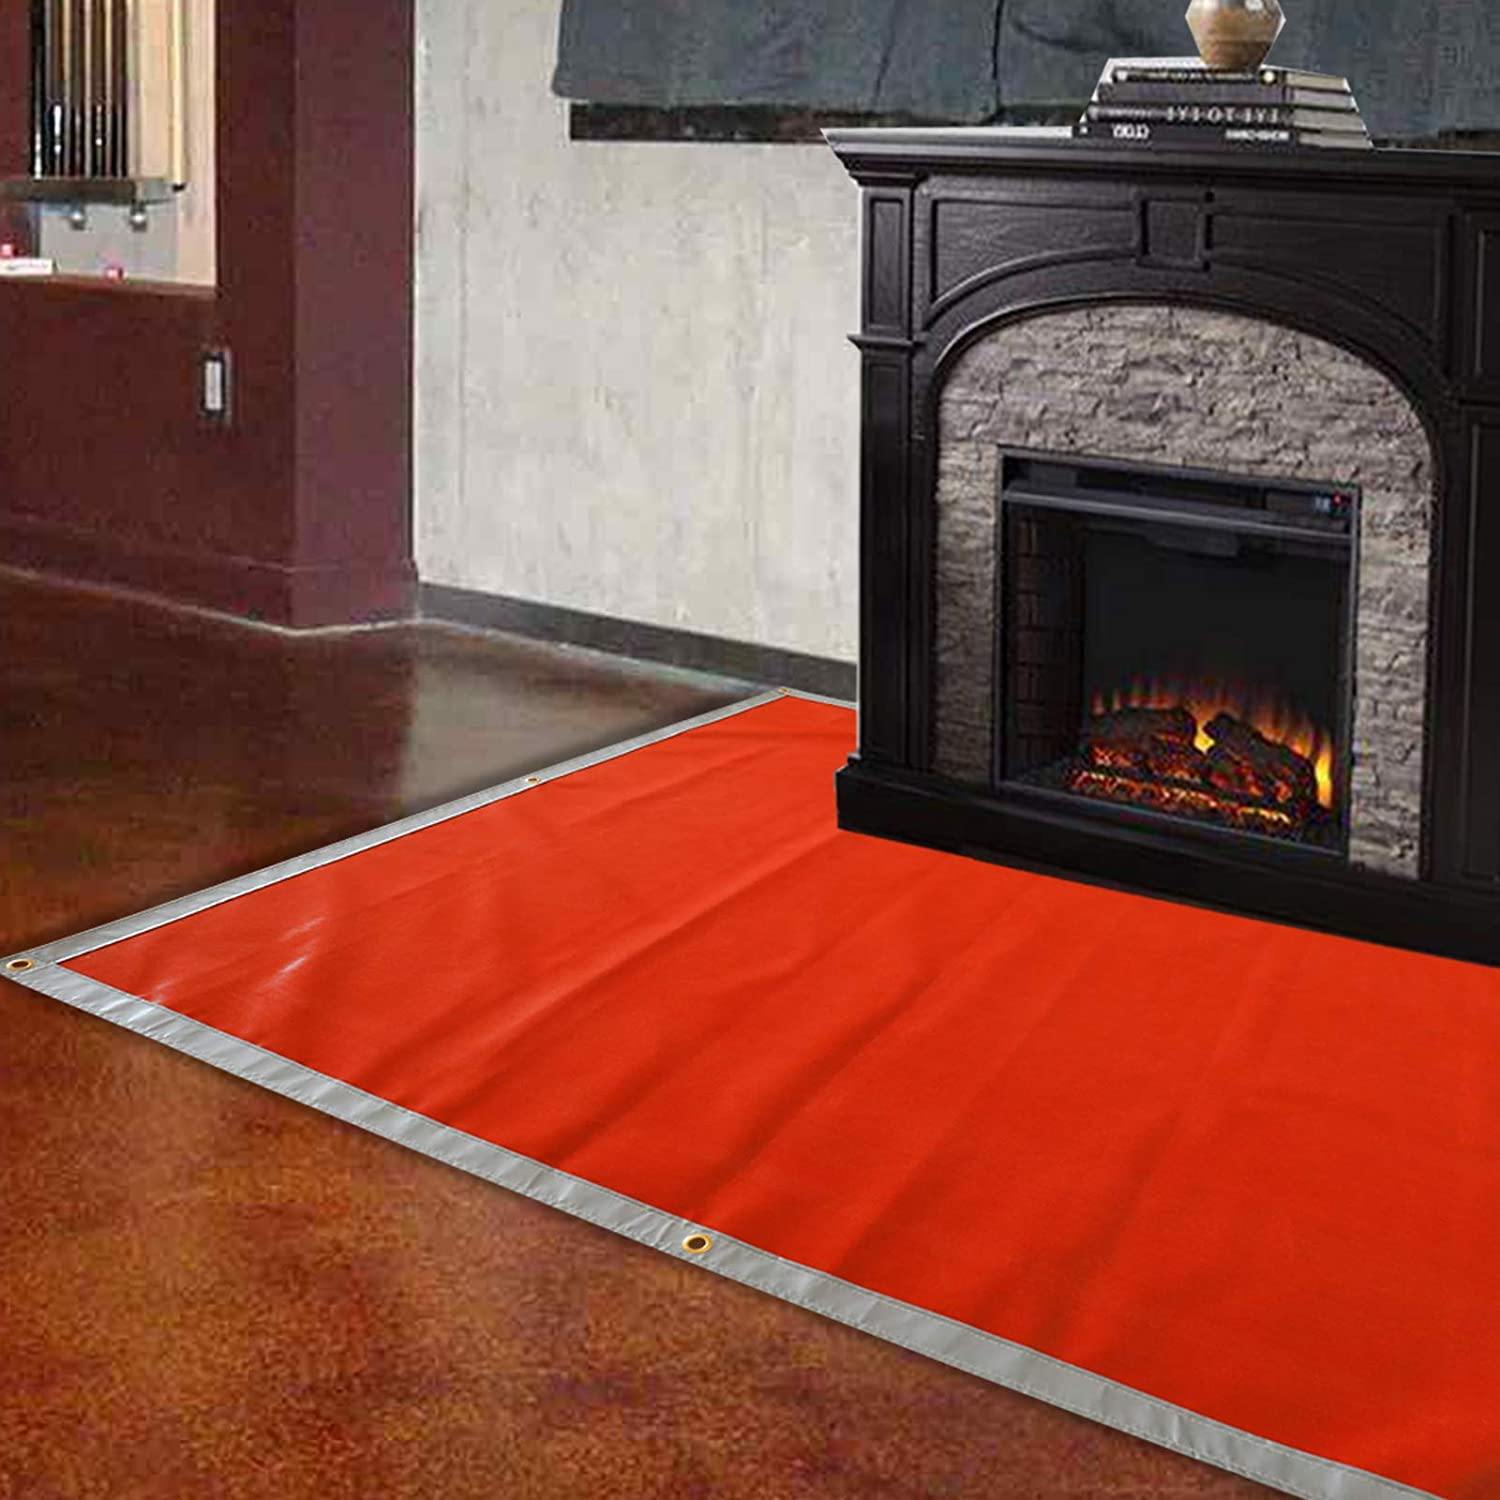 Patio Fire Pit Mat Finderomend Ember Mat 67 x 60 Protect Your Deck Lawn or Campsite from Popping Embers Grill Mat